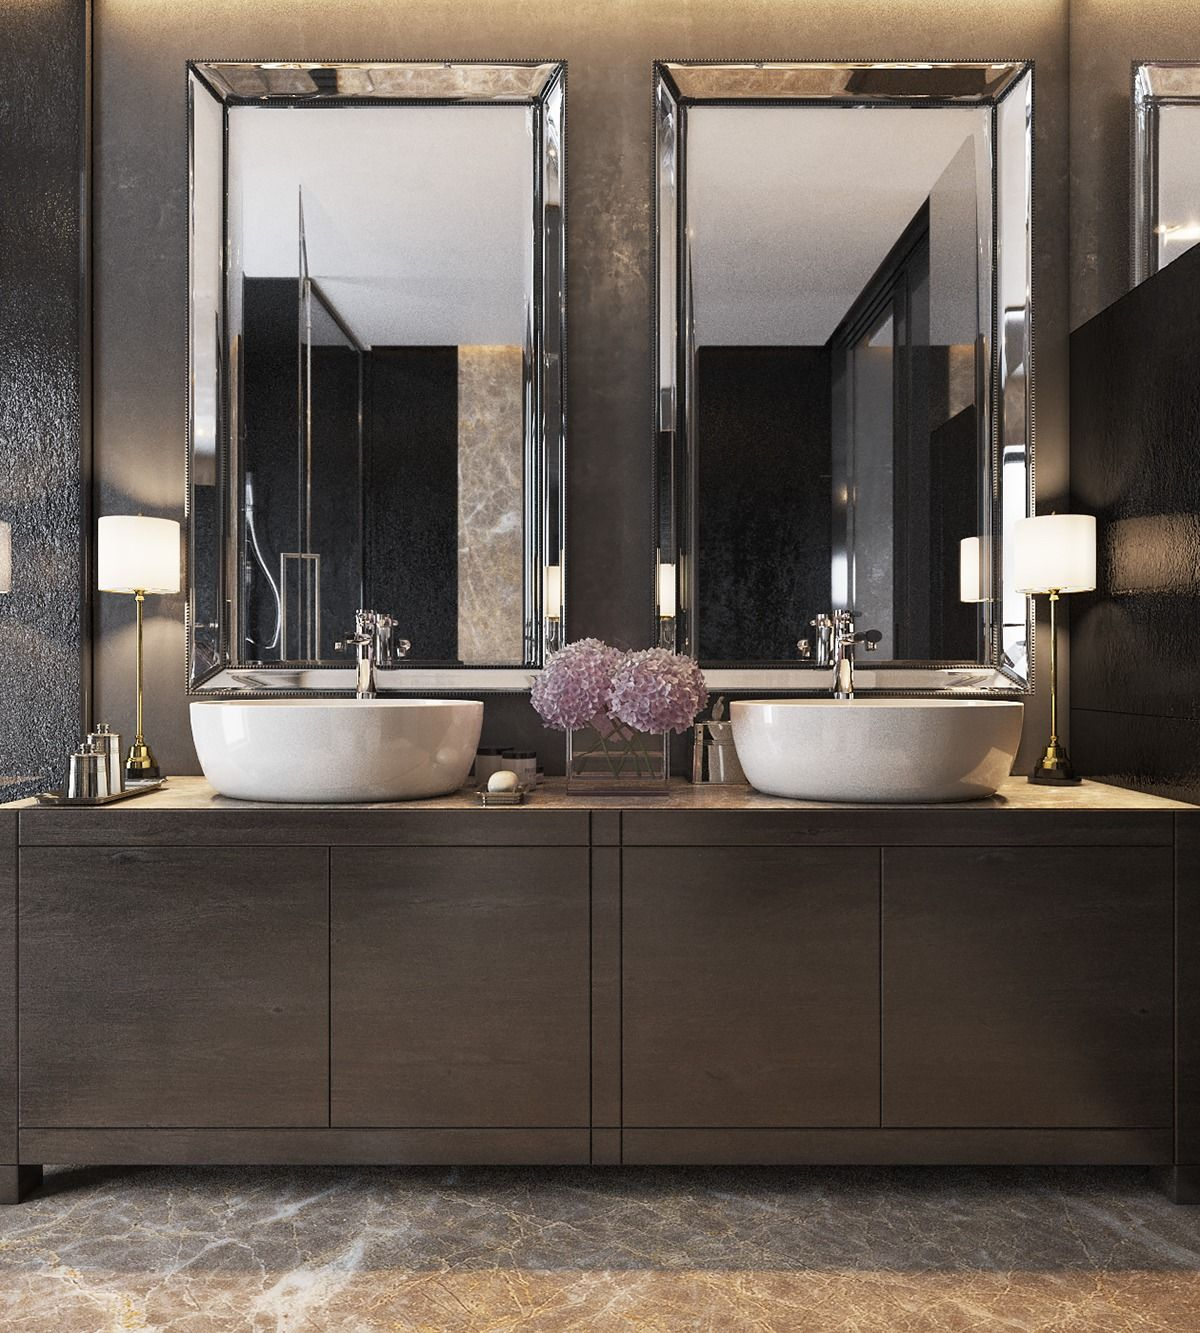 Three Luxurious Apartments With Dark Modern Interiors Bathroom Mirror Design Modern Bathroom Design Elegant Bathroom